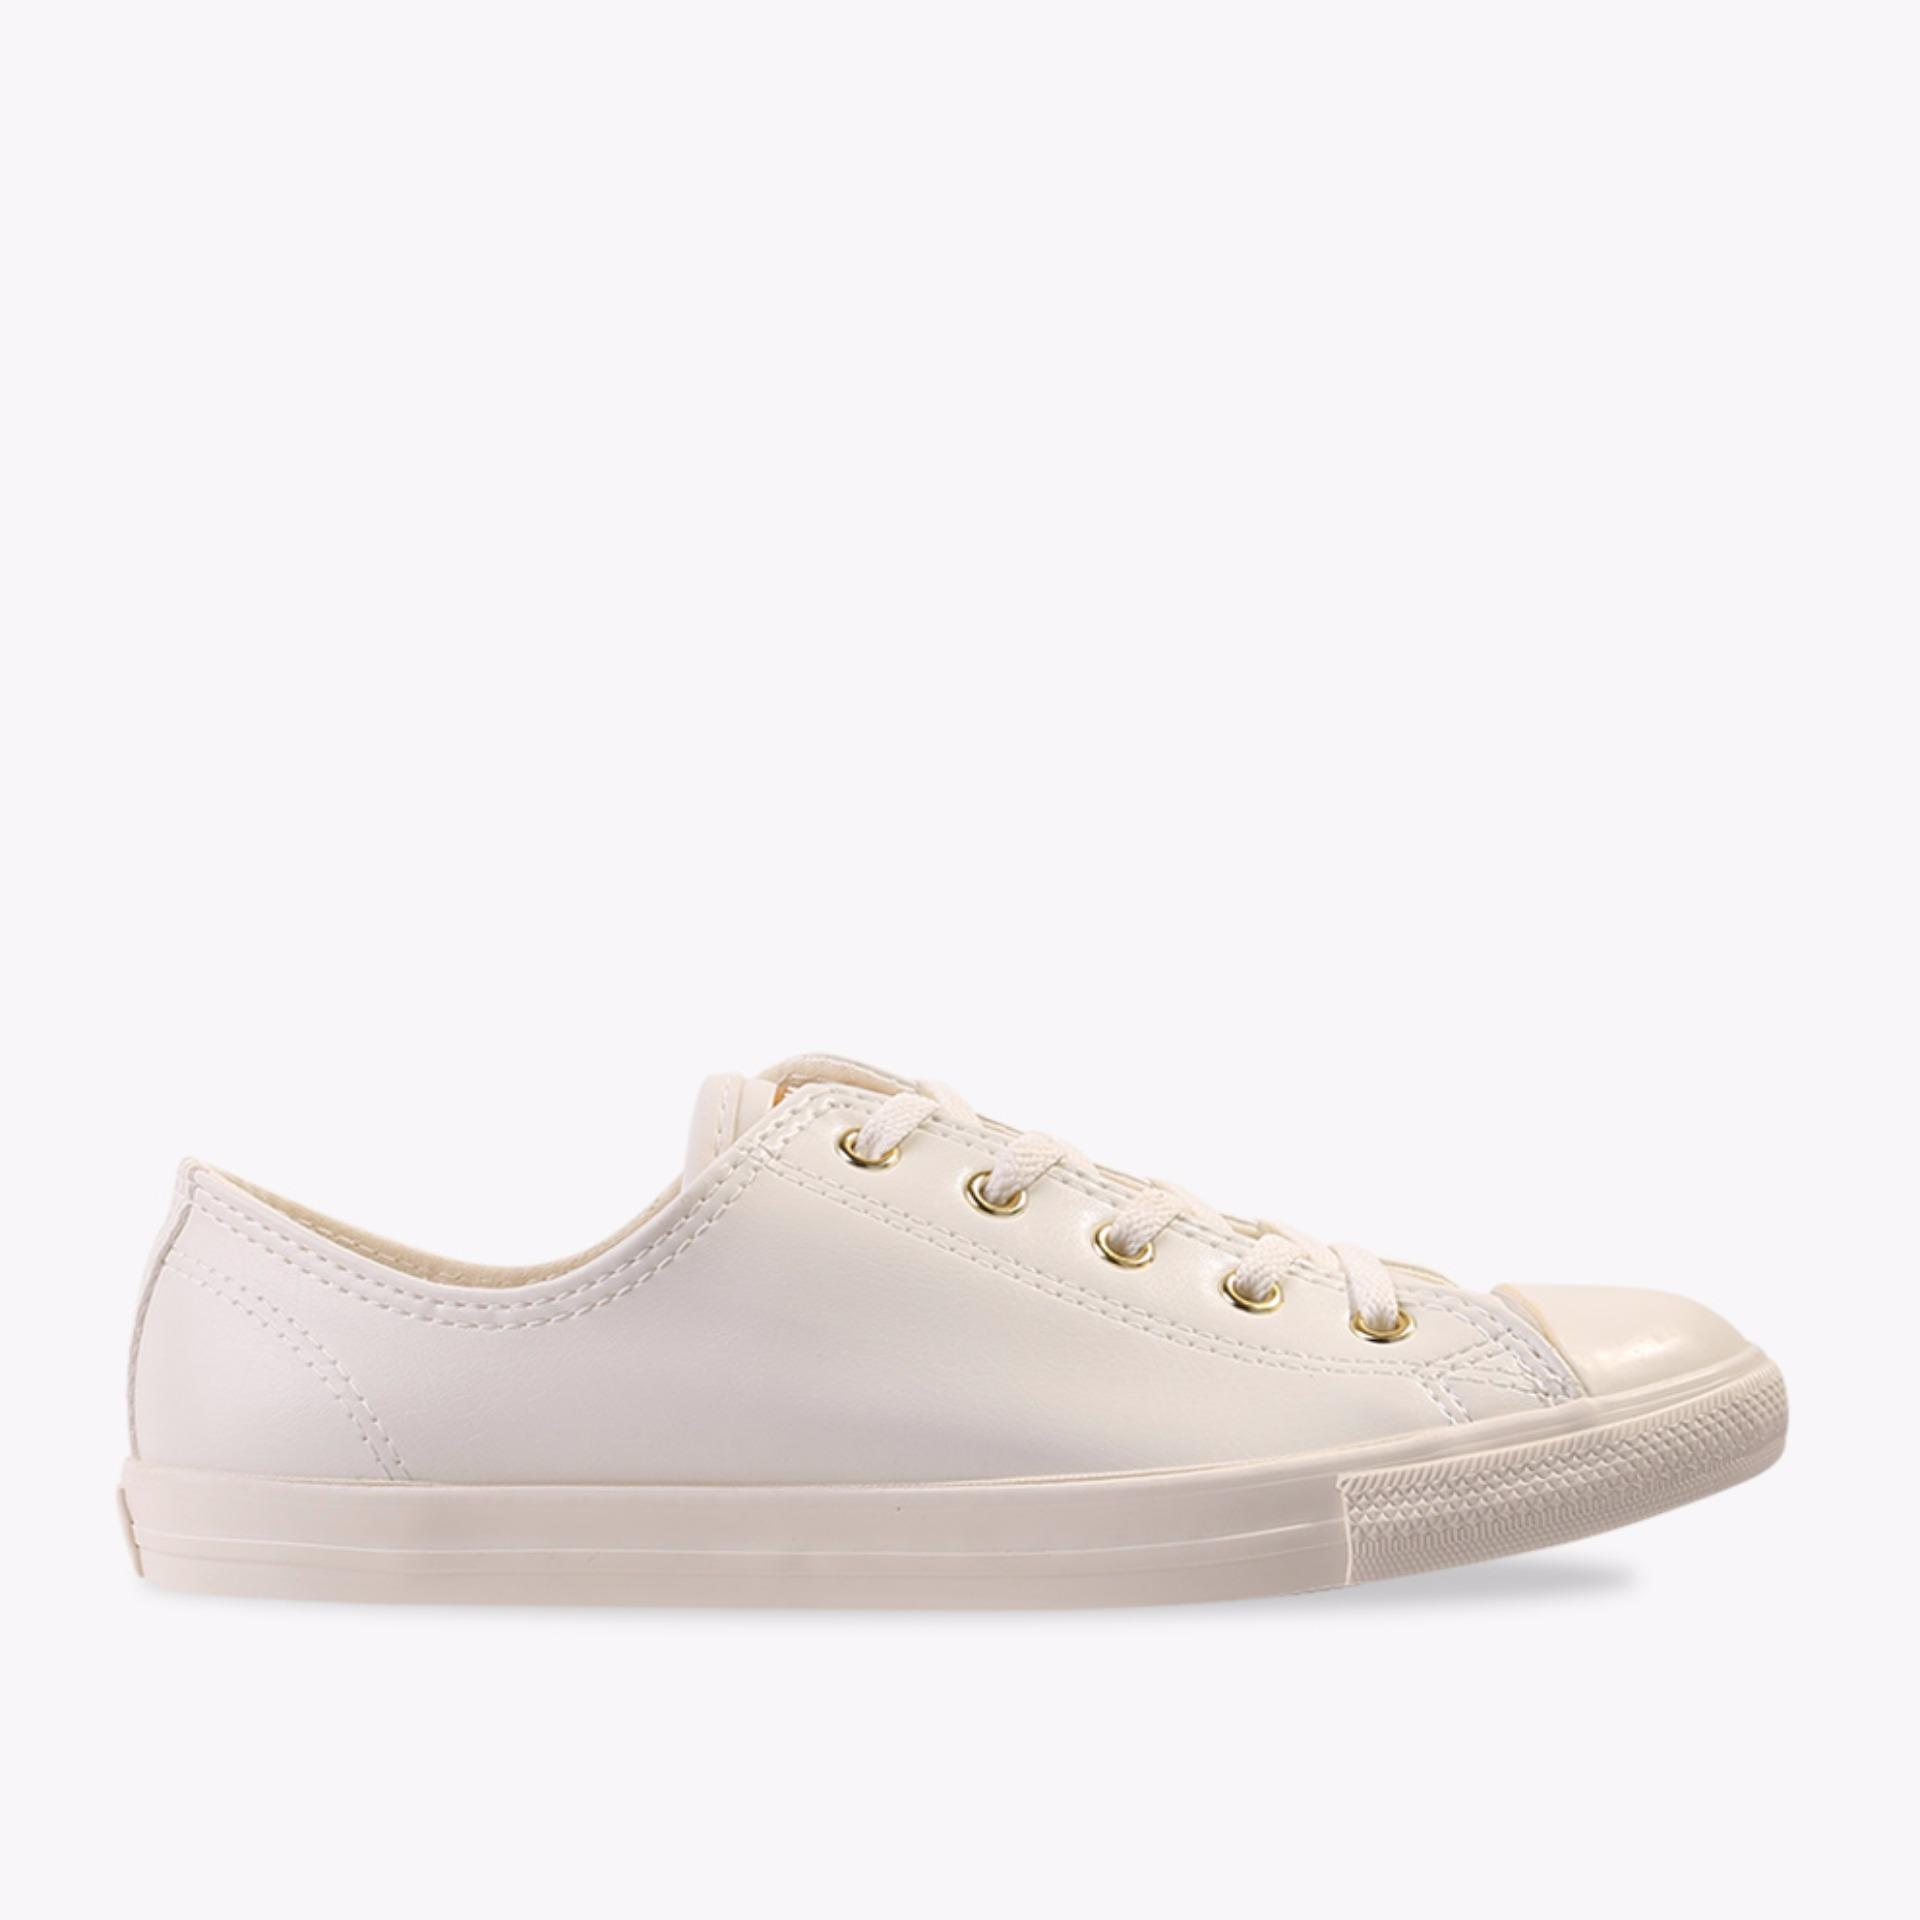 Converse Chuck Taylor All Star Dainty Ox Women's Sneakers Shoes - Putih